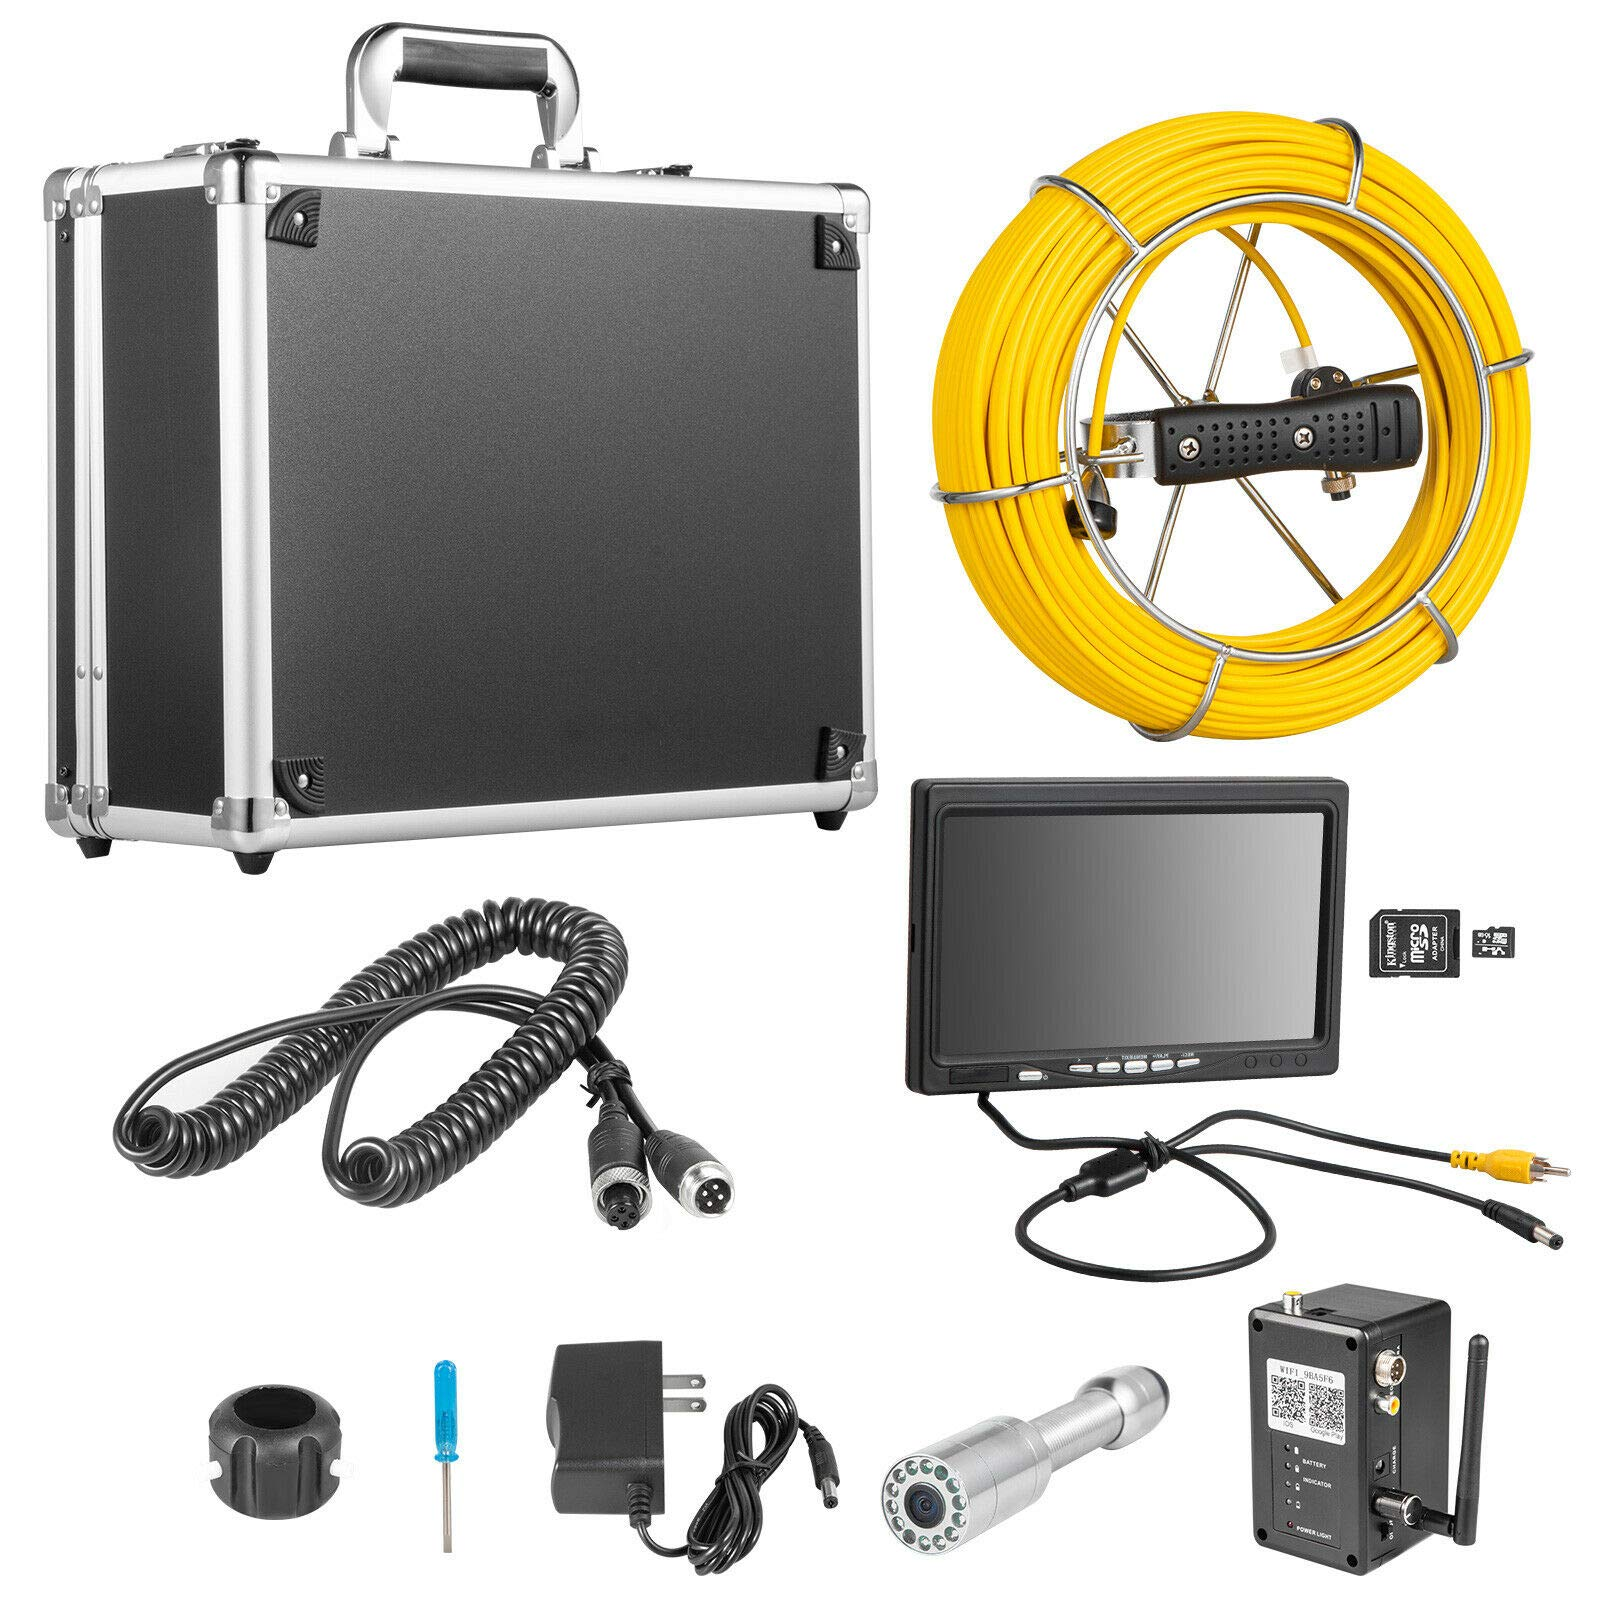 VEVOR 9 Inch WiFi 20M with APP Taking Pictures Video Recording 23MM Industrial Sewer Camera IP68 Waterproof 12 pcs LED Lights Pipe Inspection Camera